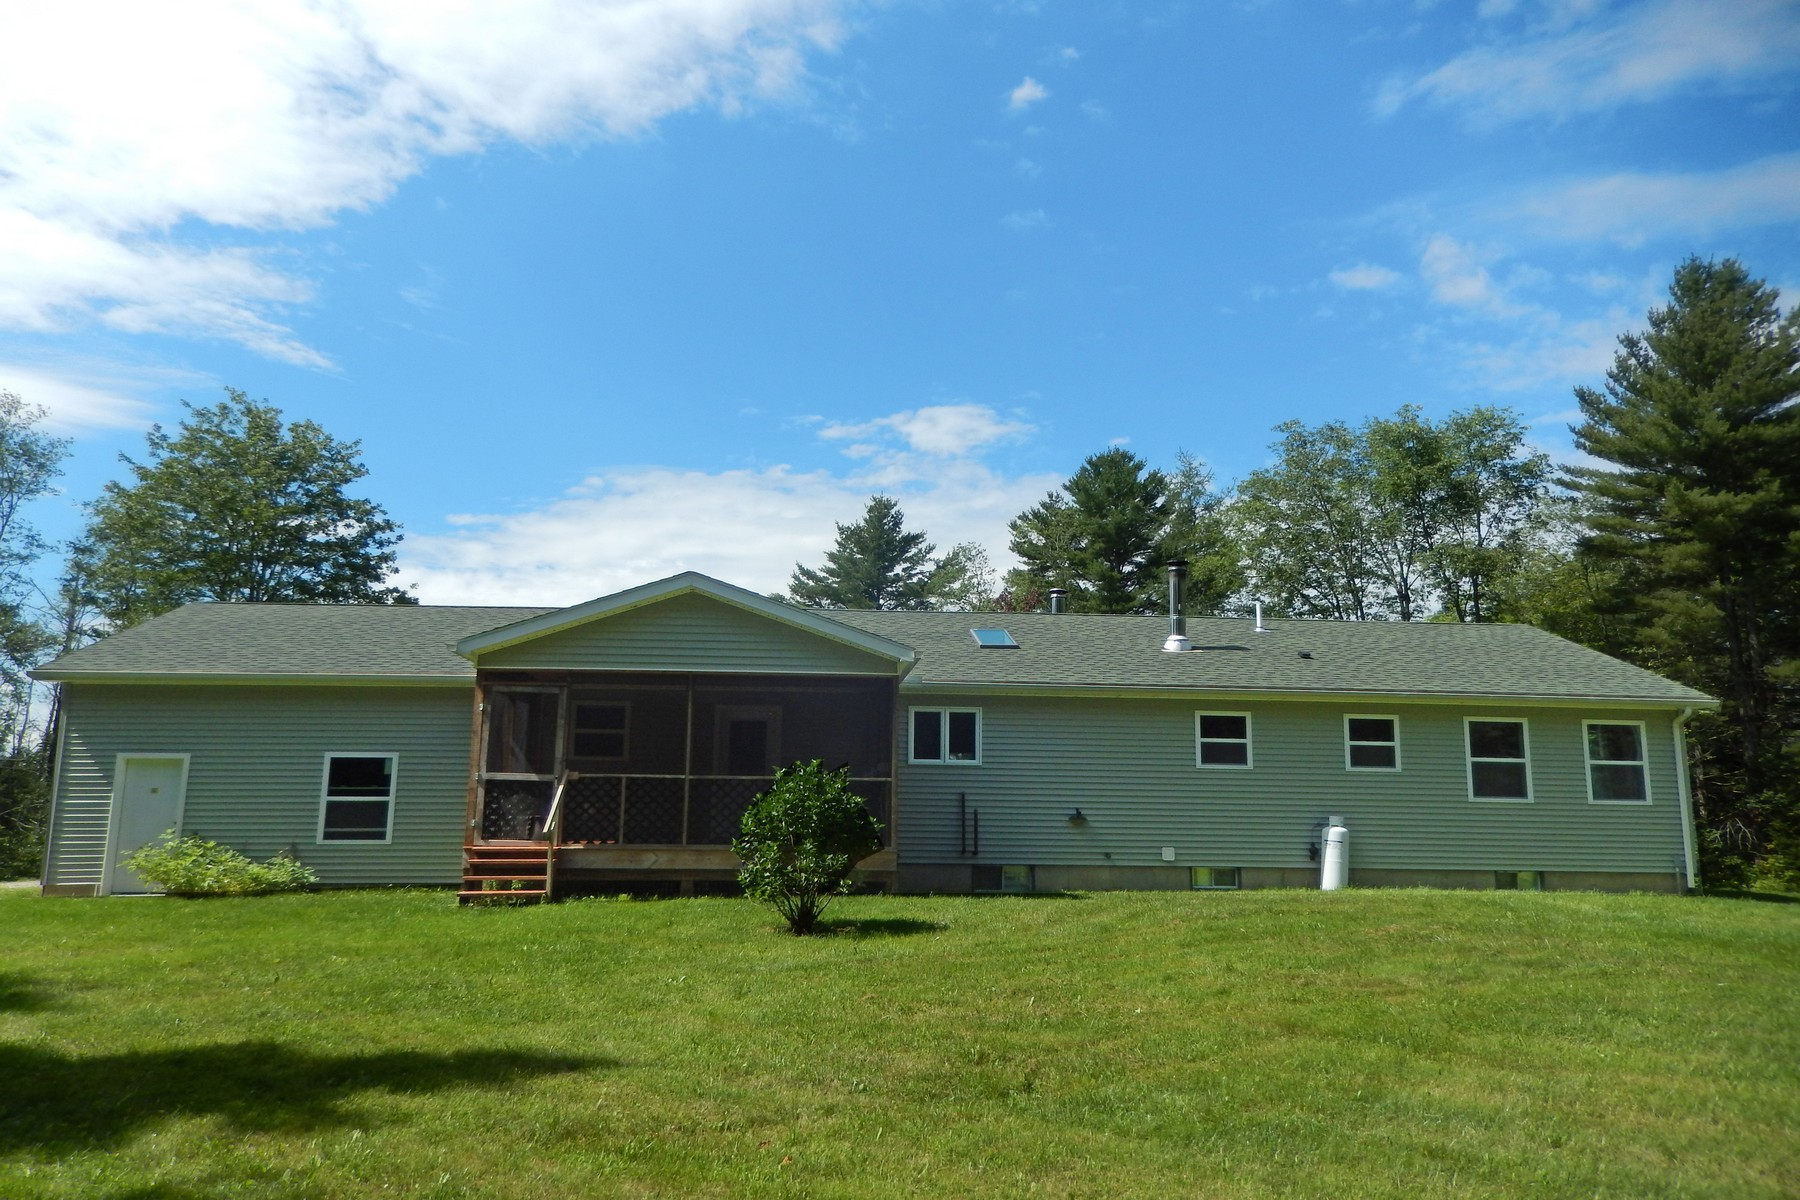 Casa Unifamiliar por un Venta en Newly Built Ranch on 11+ Acres 2083 Hortonville Rd Mount Holly, Vermont, 05758 Estados Unidos